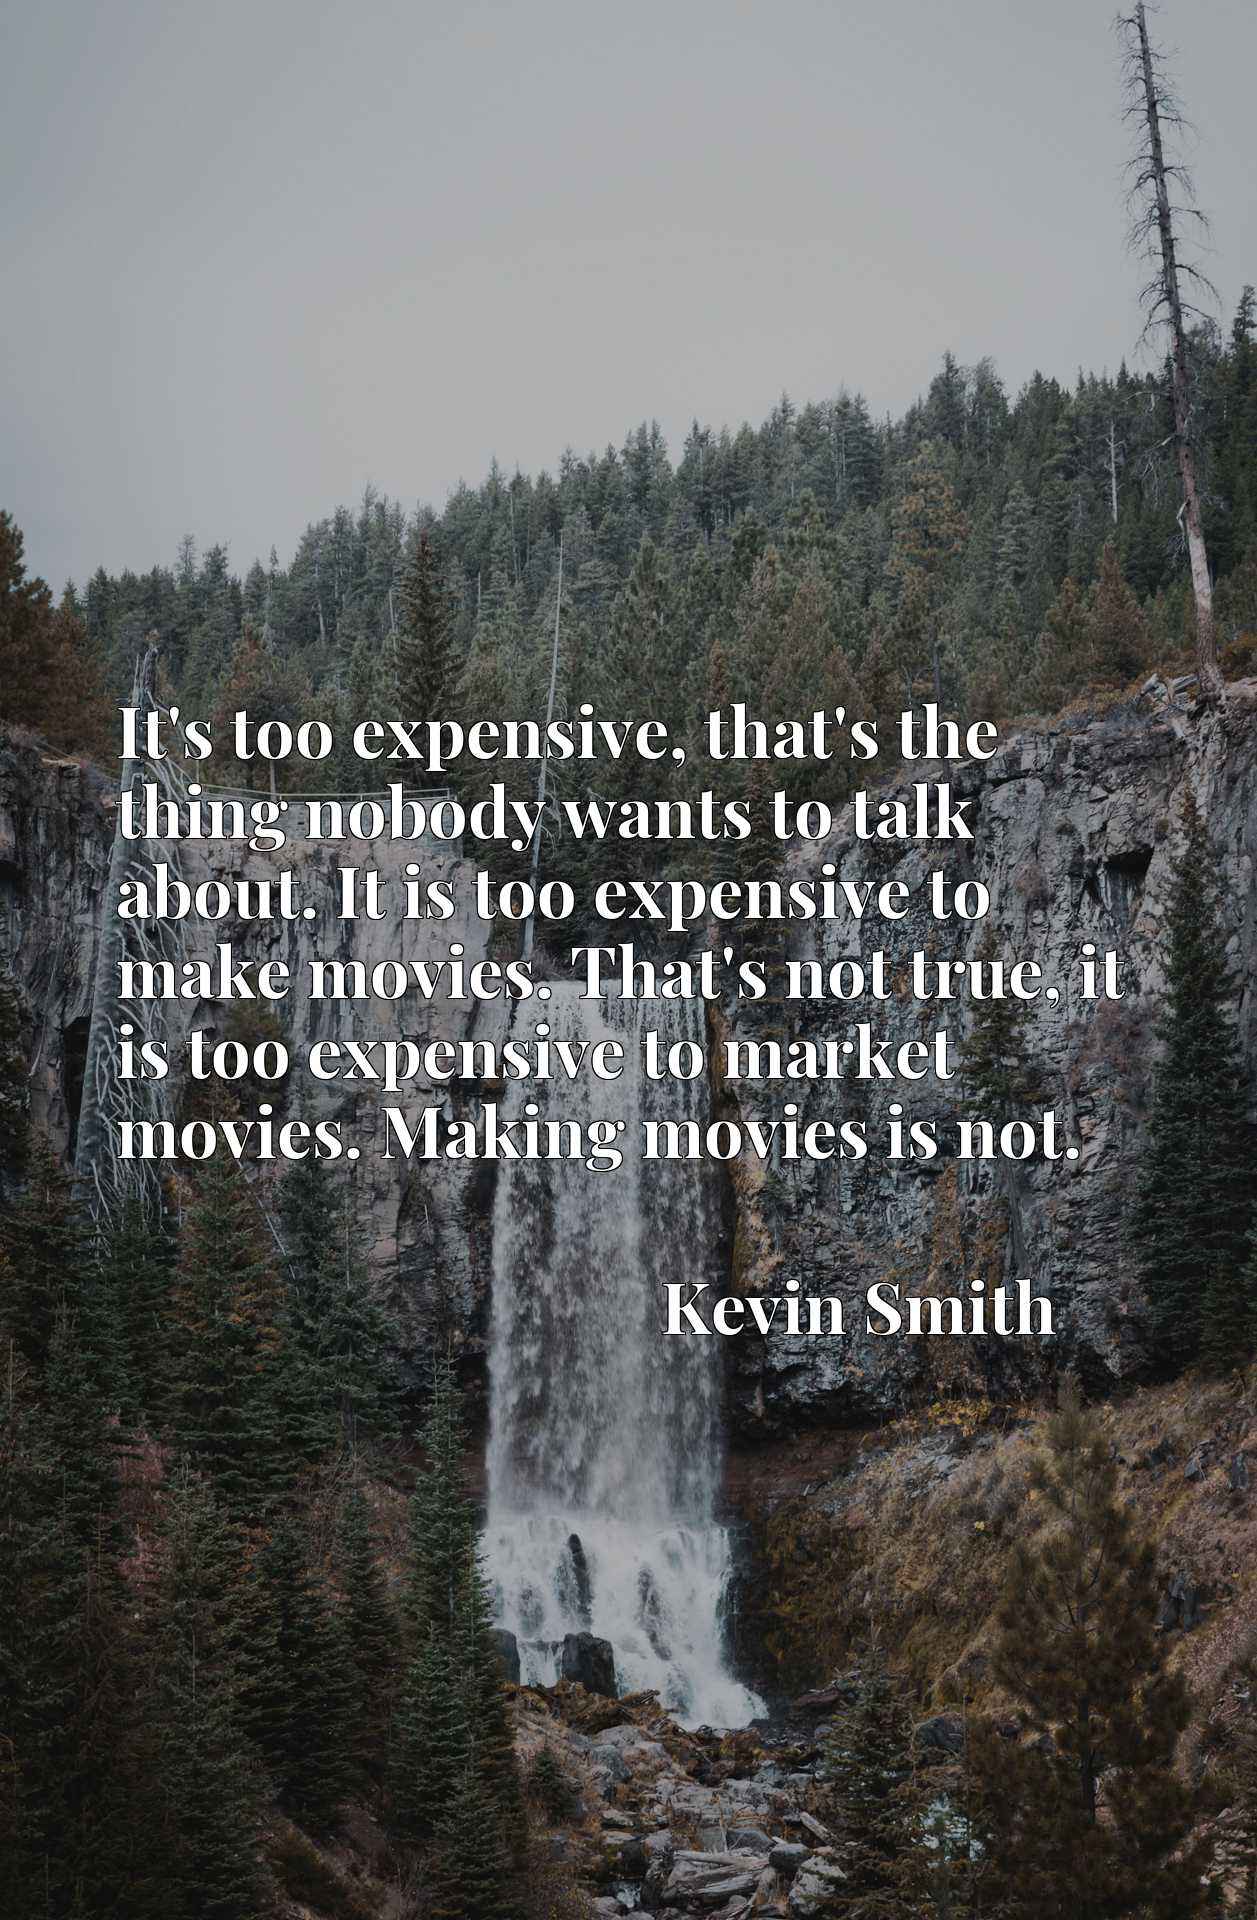 It's too expensive, that's the thing nobody wants to talk about. It is too expensive to make movies. That's not true, it is too expensive to market movies. Making movies is not.